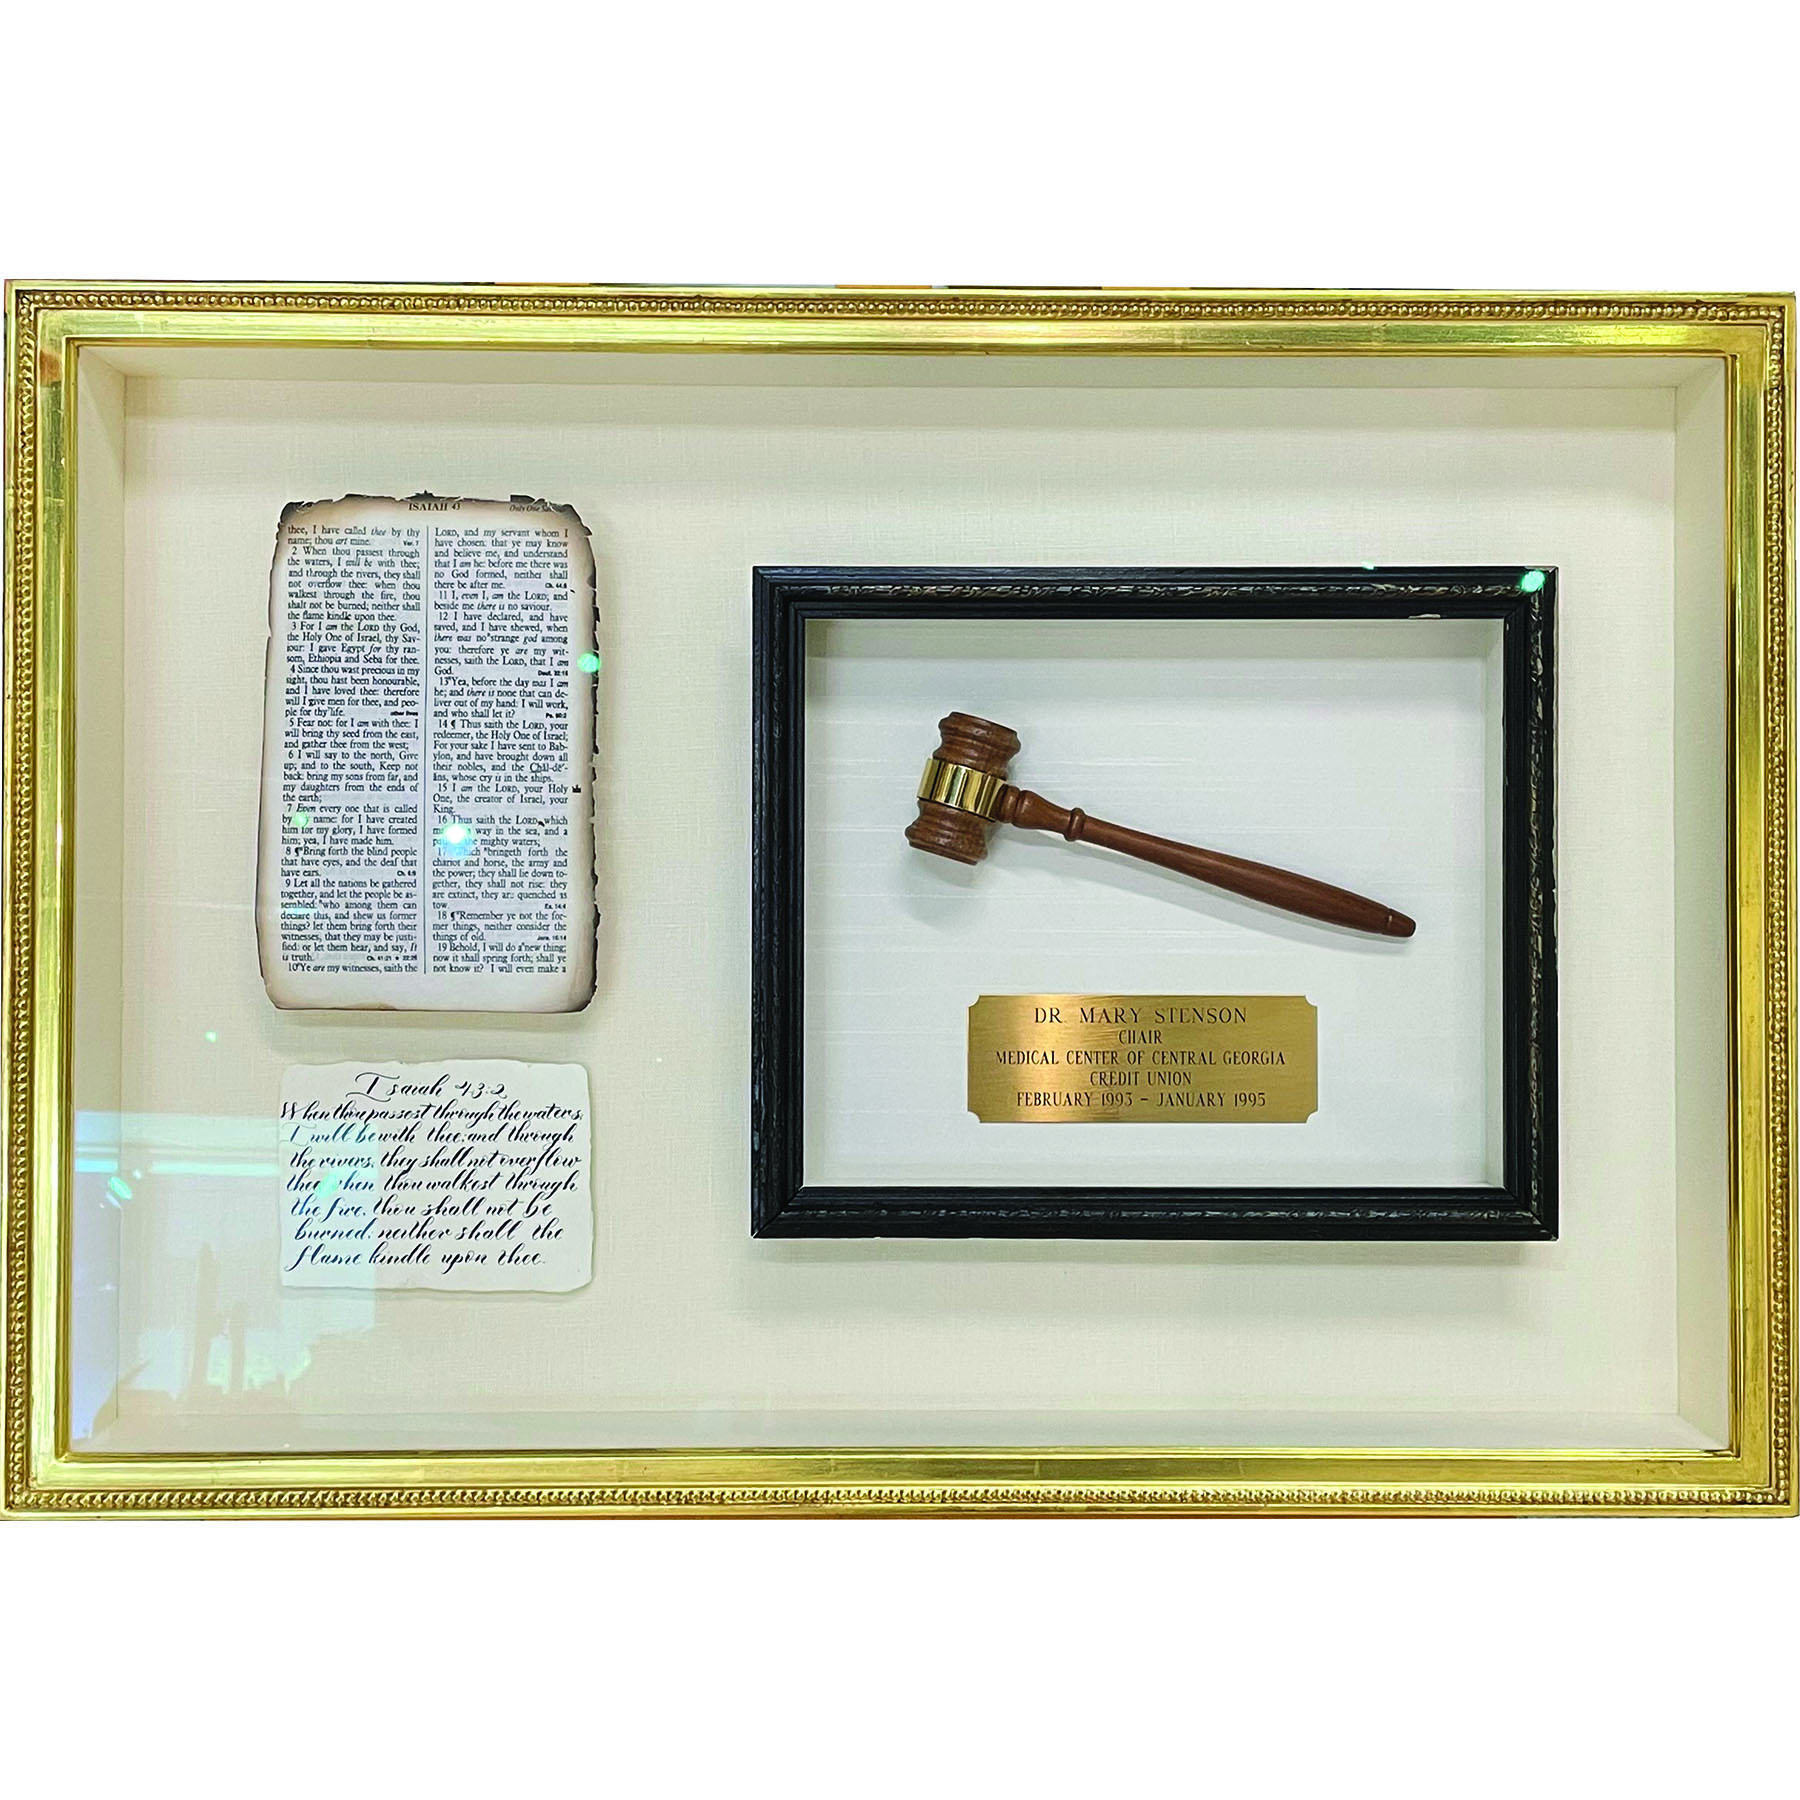 Gavel and papers in a gold custom frame